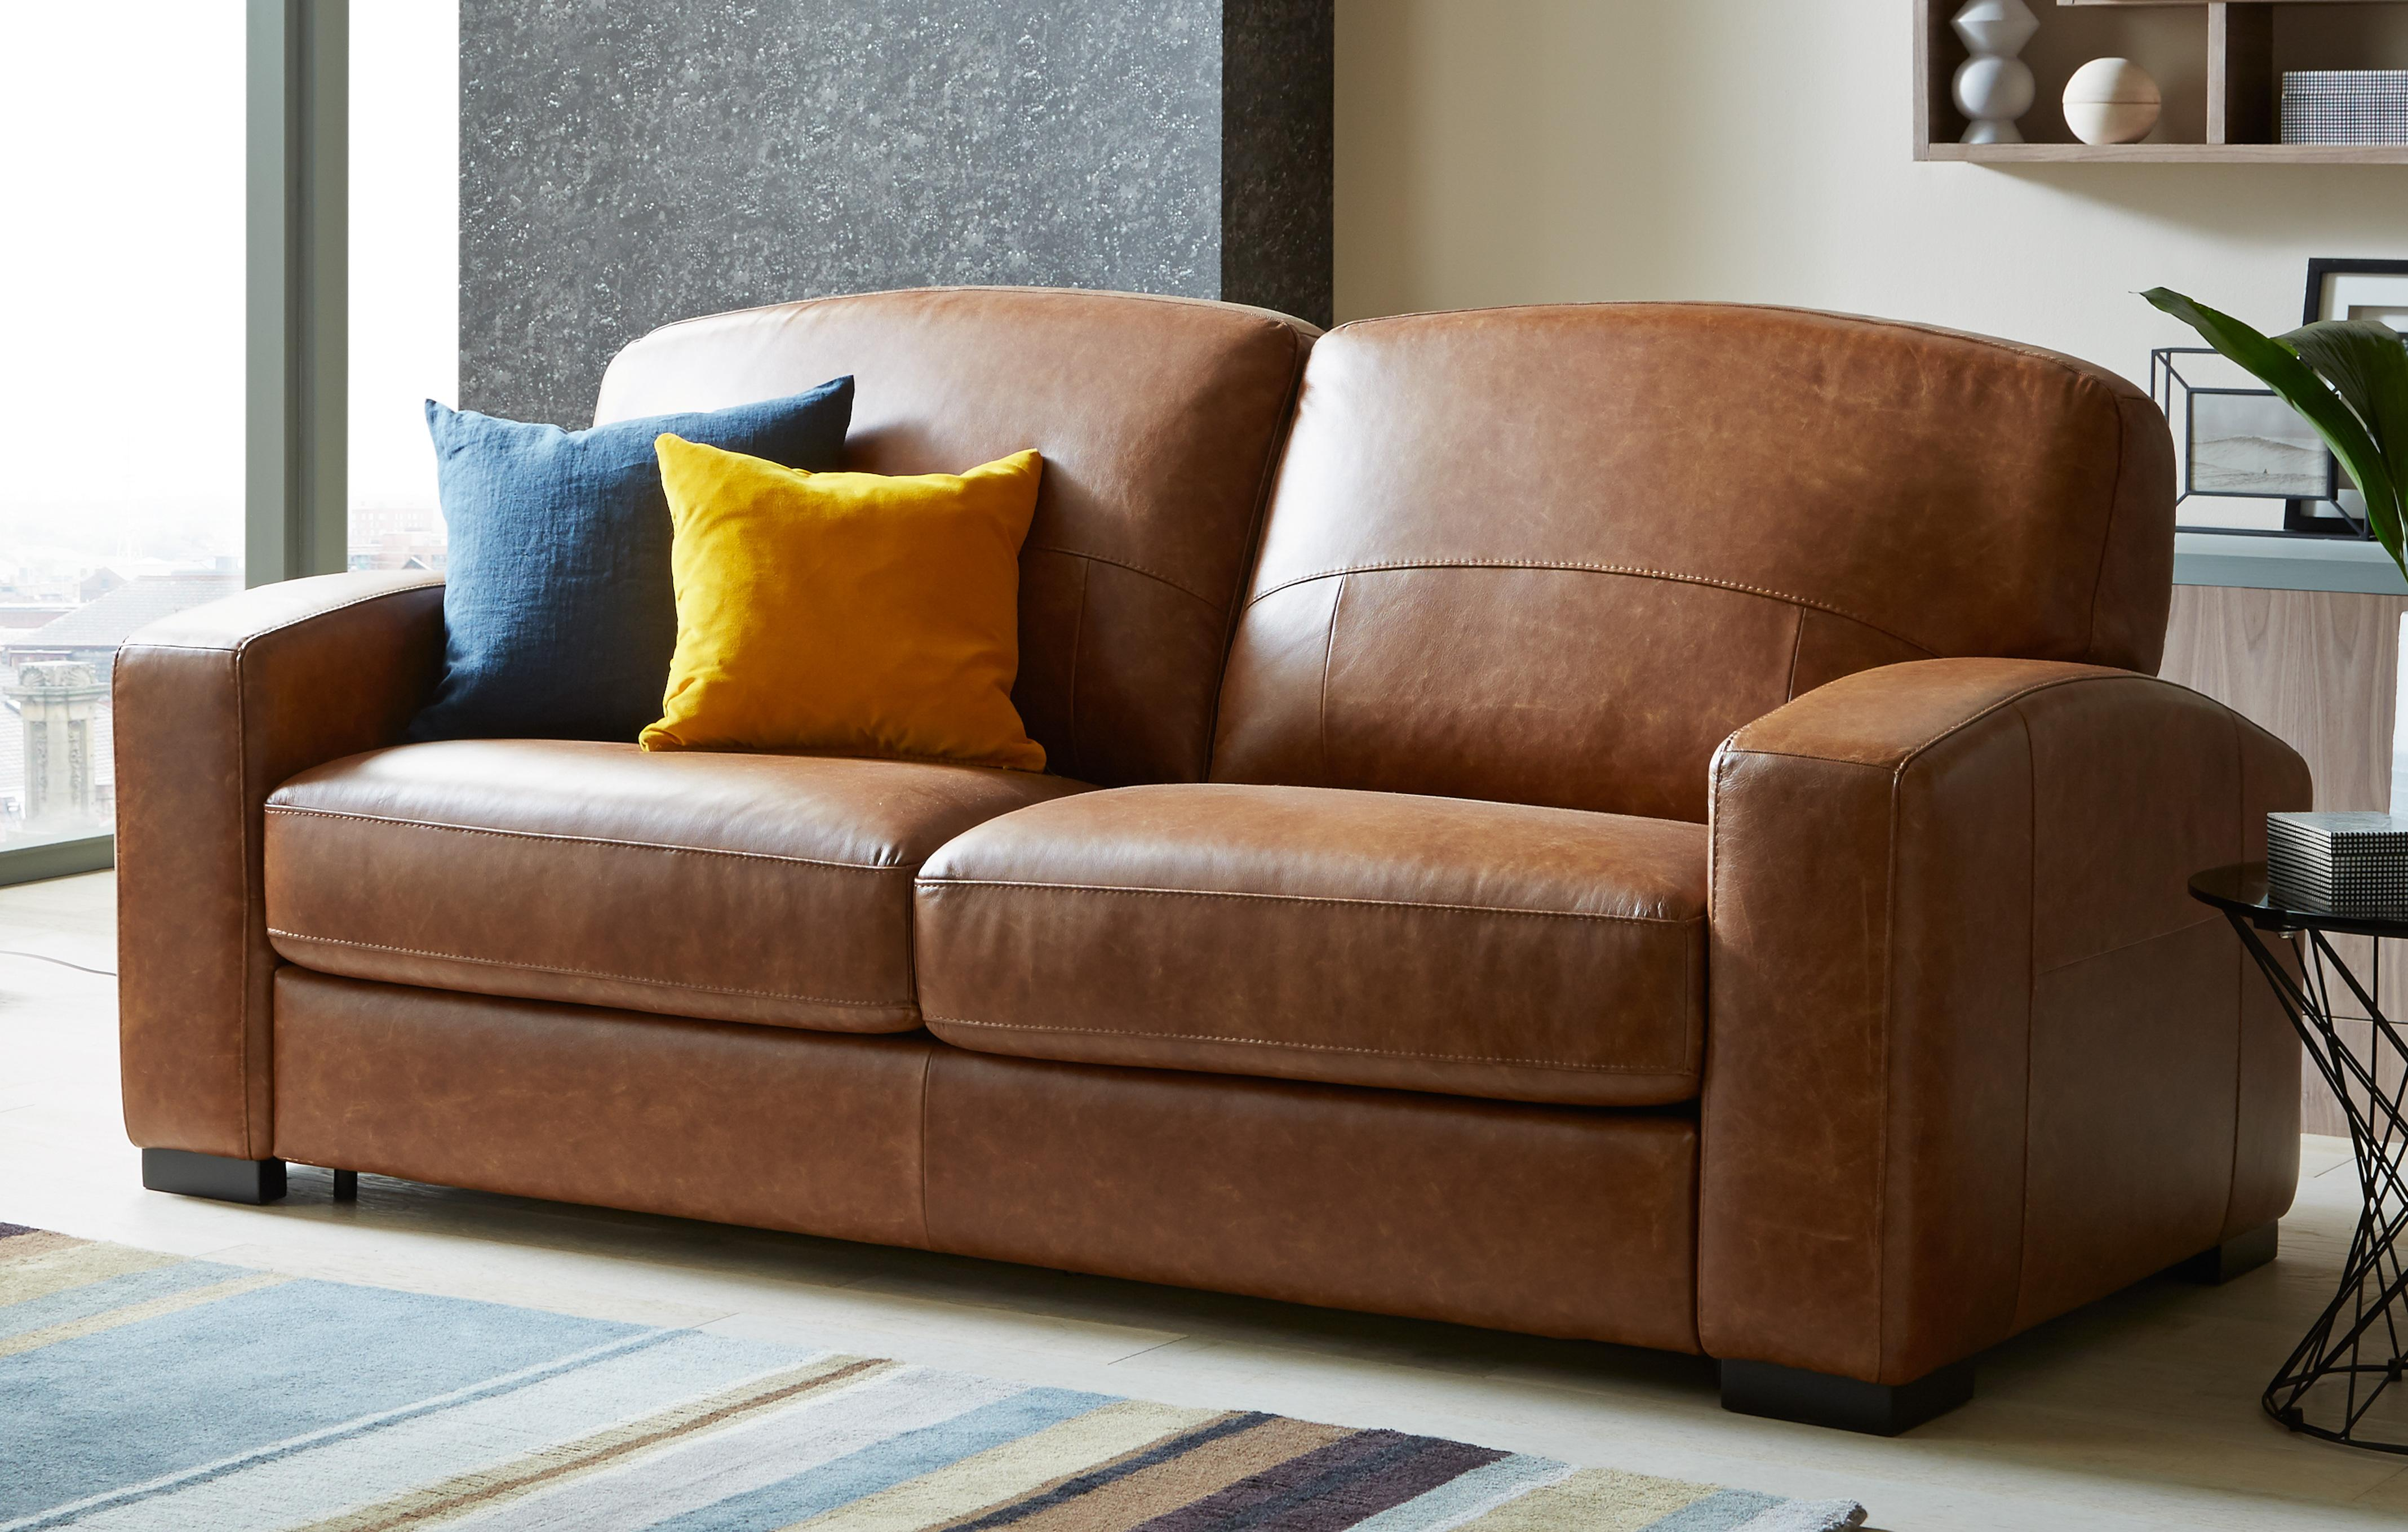 Leather Sofa Beds That Combine Quality U0026 Value | DFS